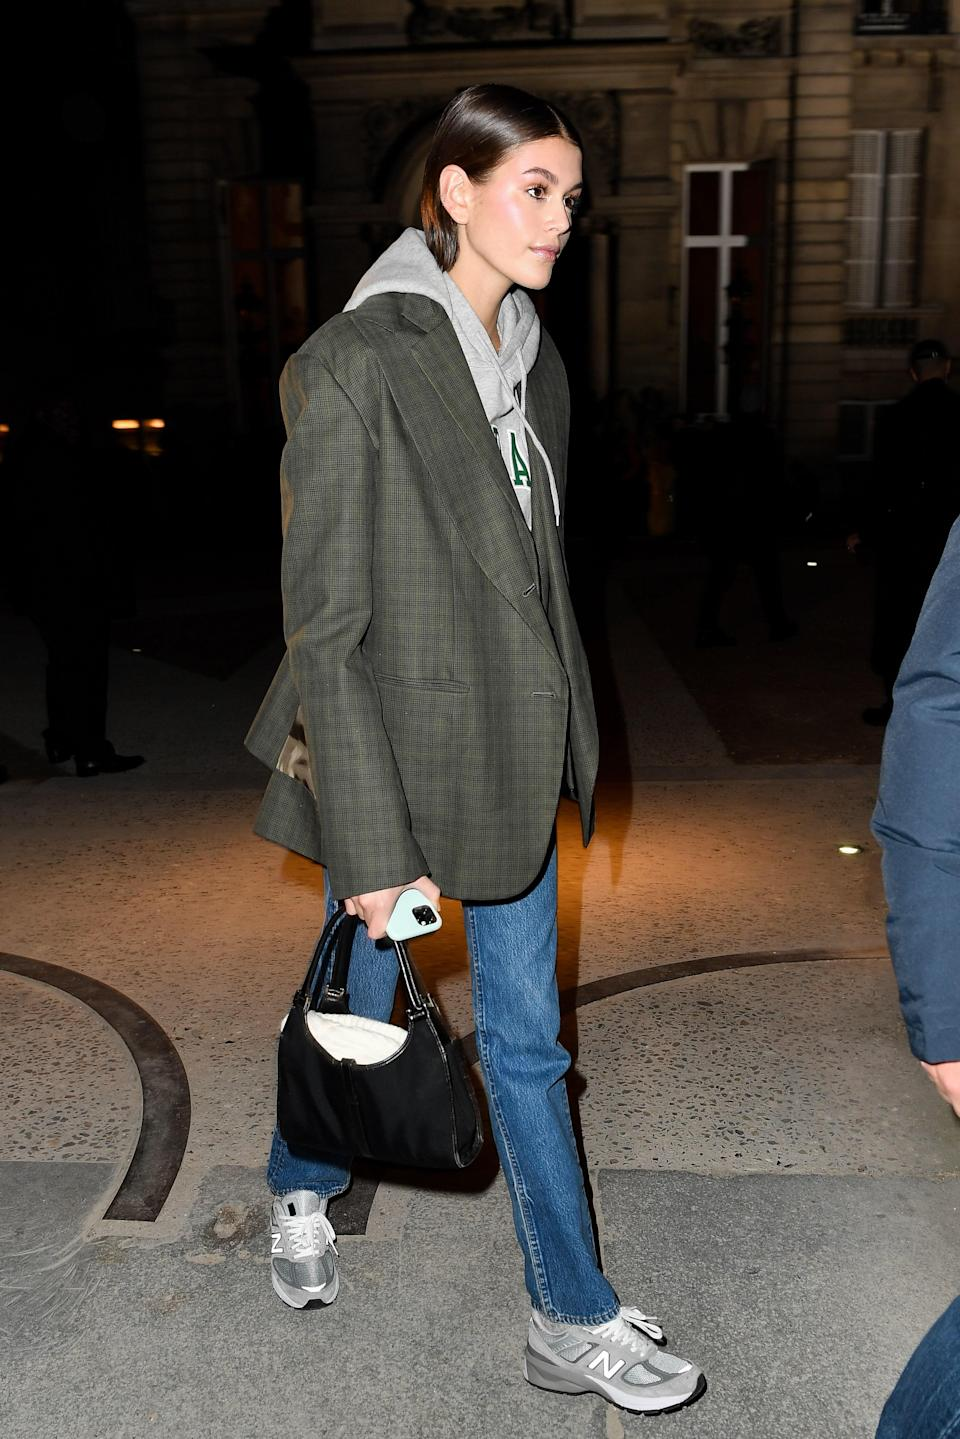 In-between shows at PFW, dad sneakers and blazers (now with Gucci a bag) dominated her wardrobe again.